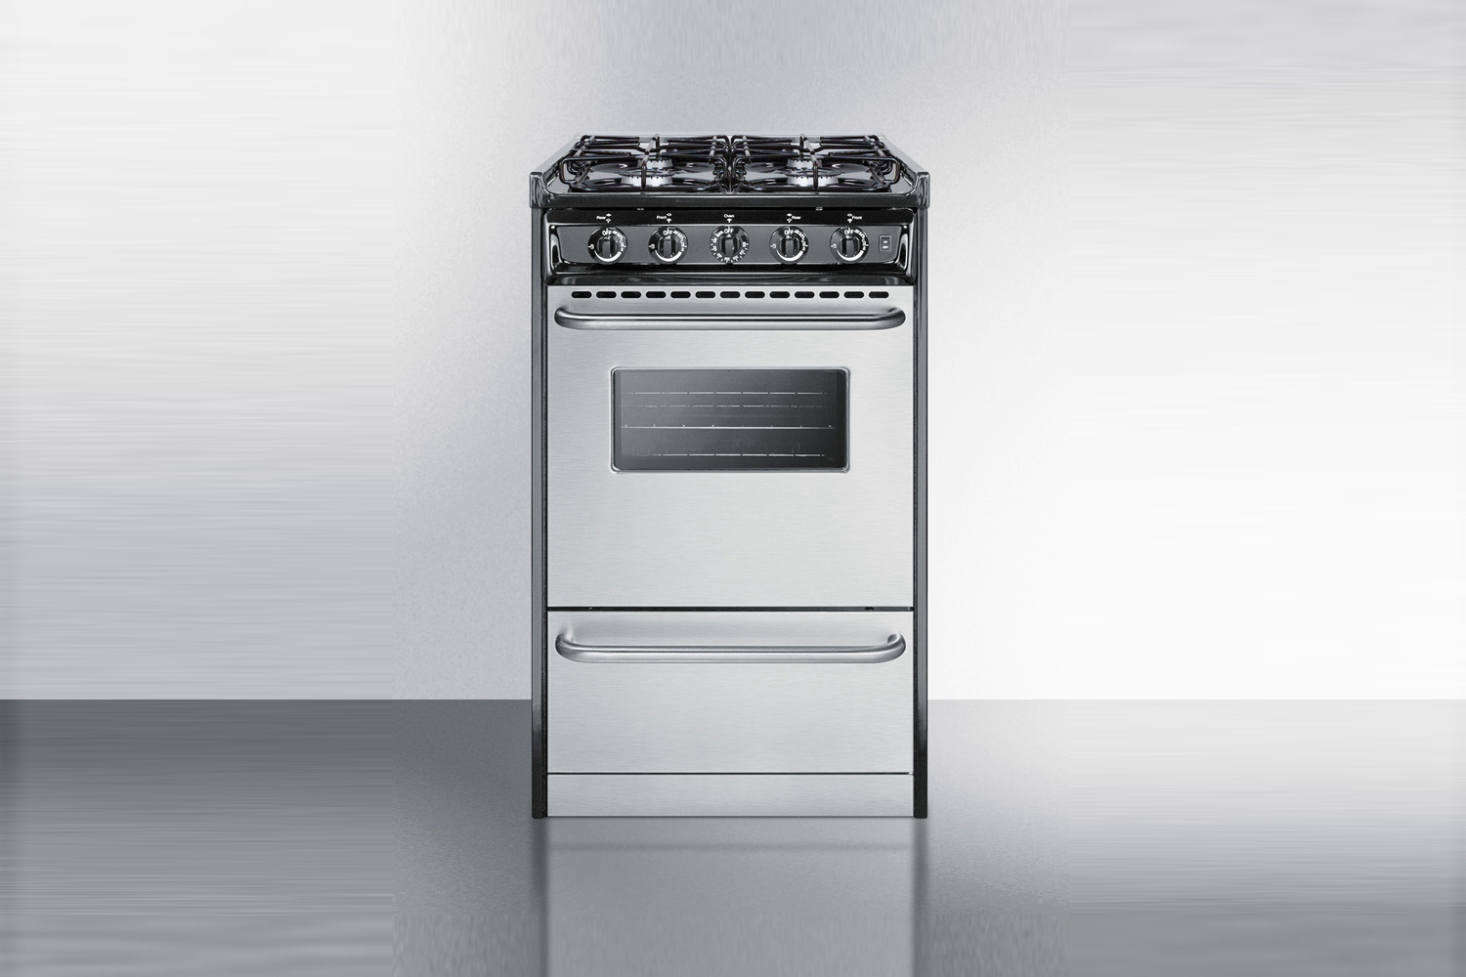 Super-small but well detailed, the Summit -Inch Slide-In Gas Rangehas four burners, a